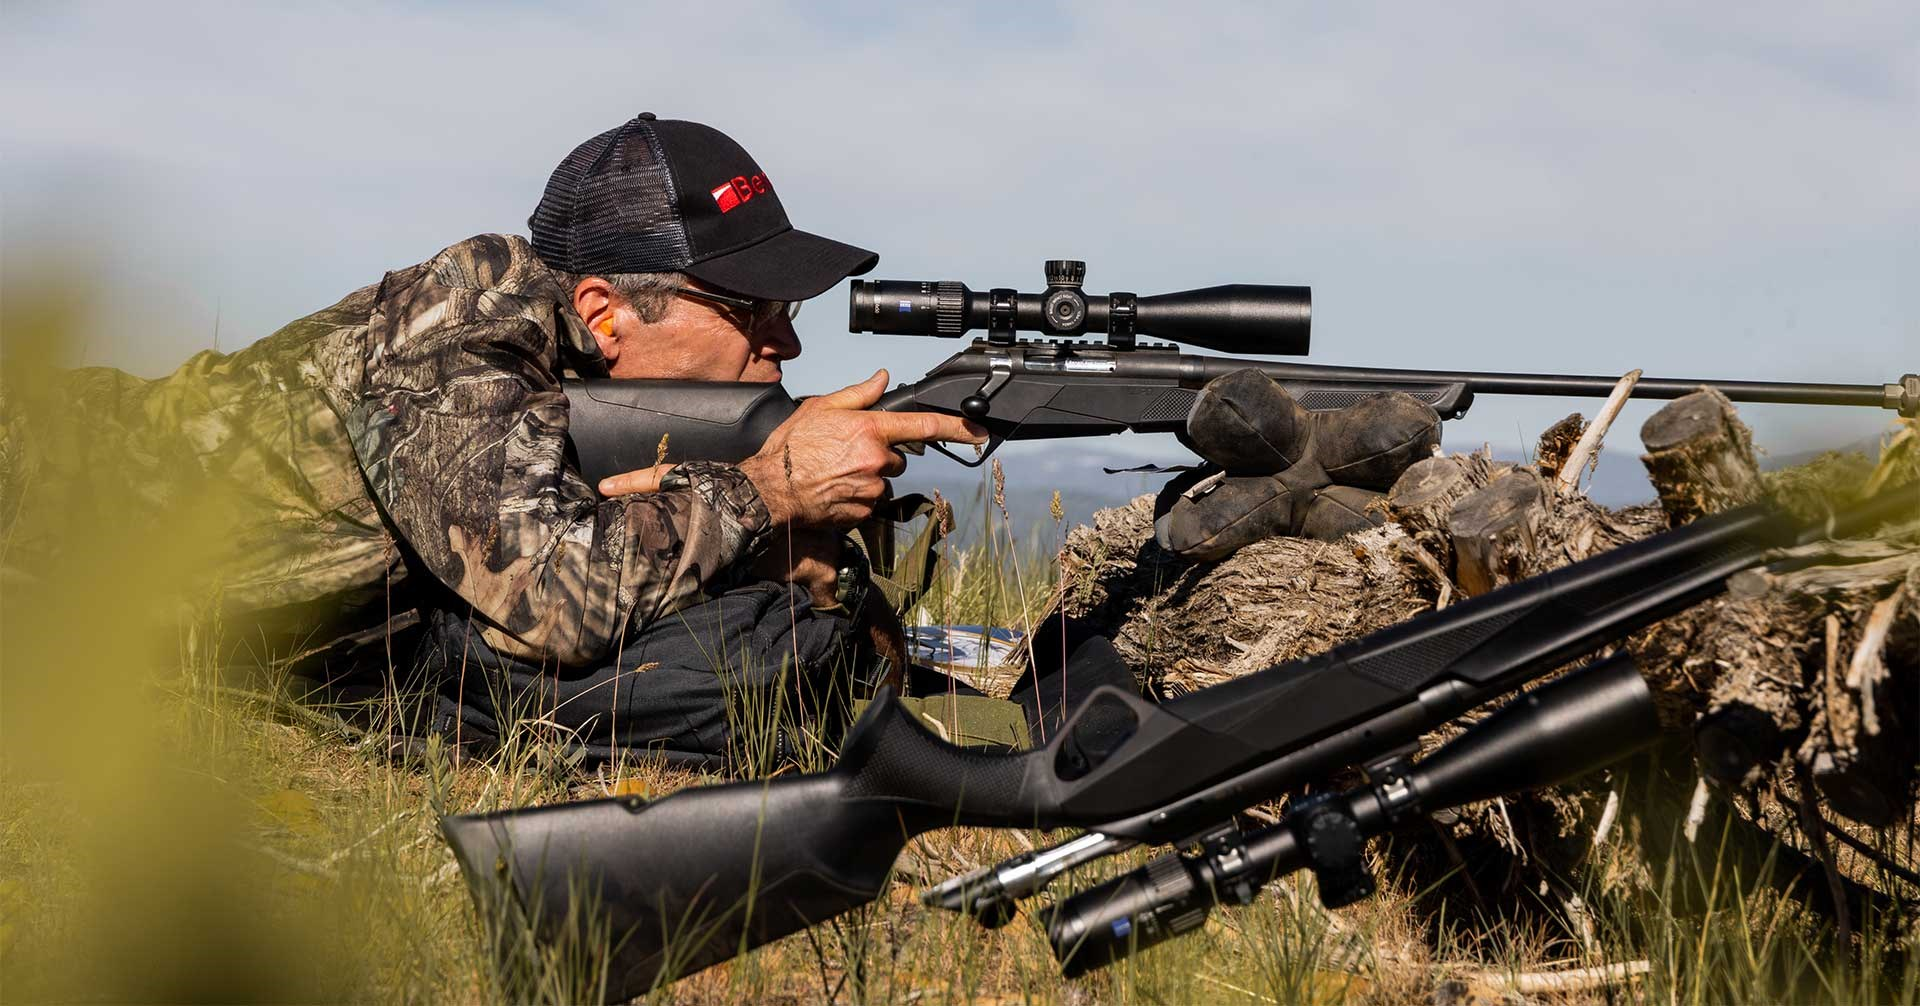 A shooter mounts his Benelli Lupo rifle in the field while shooting off a bag rest.